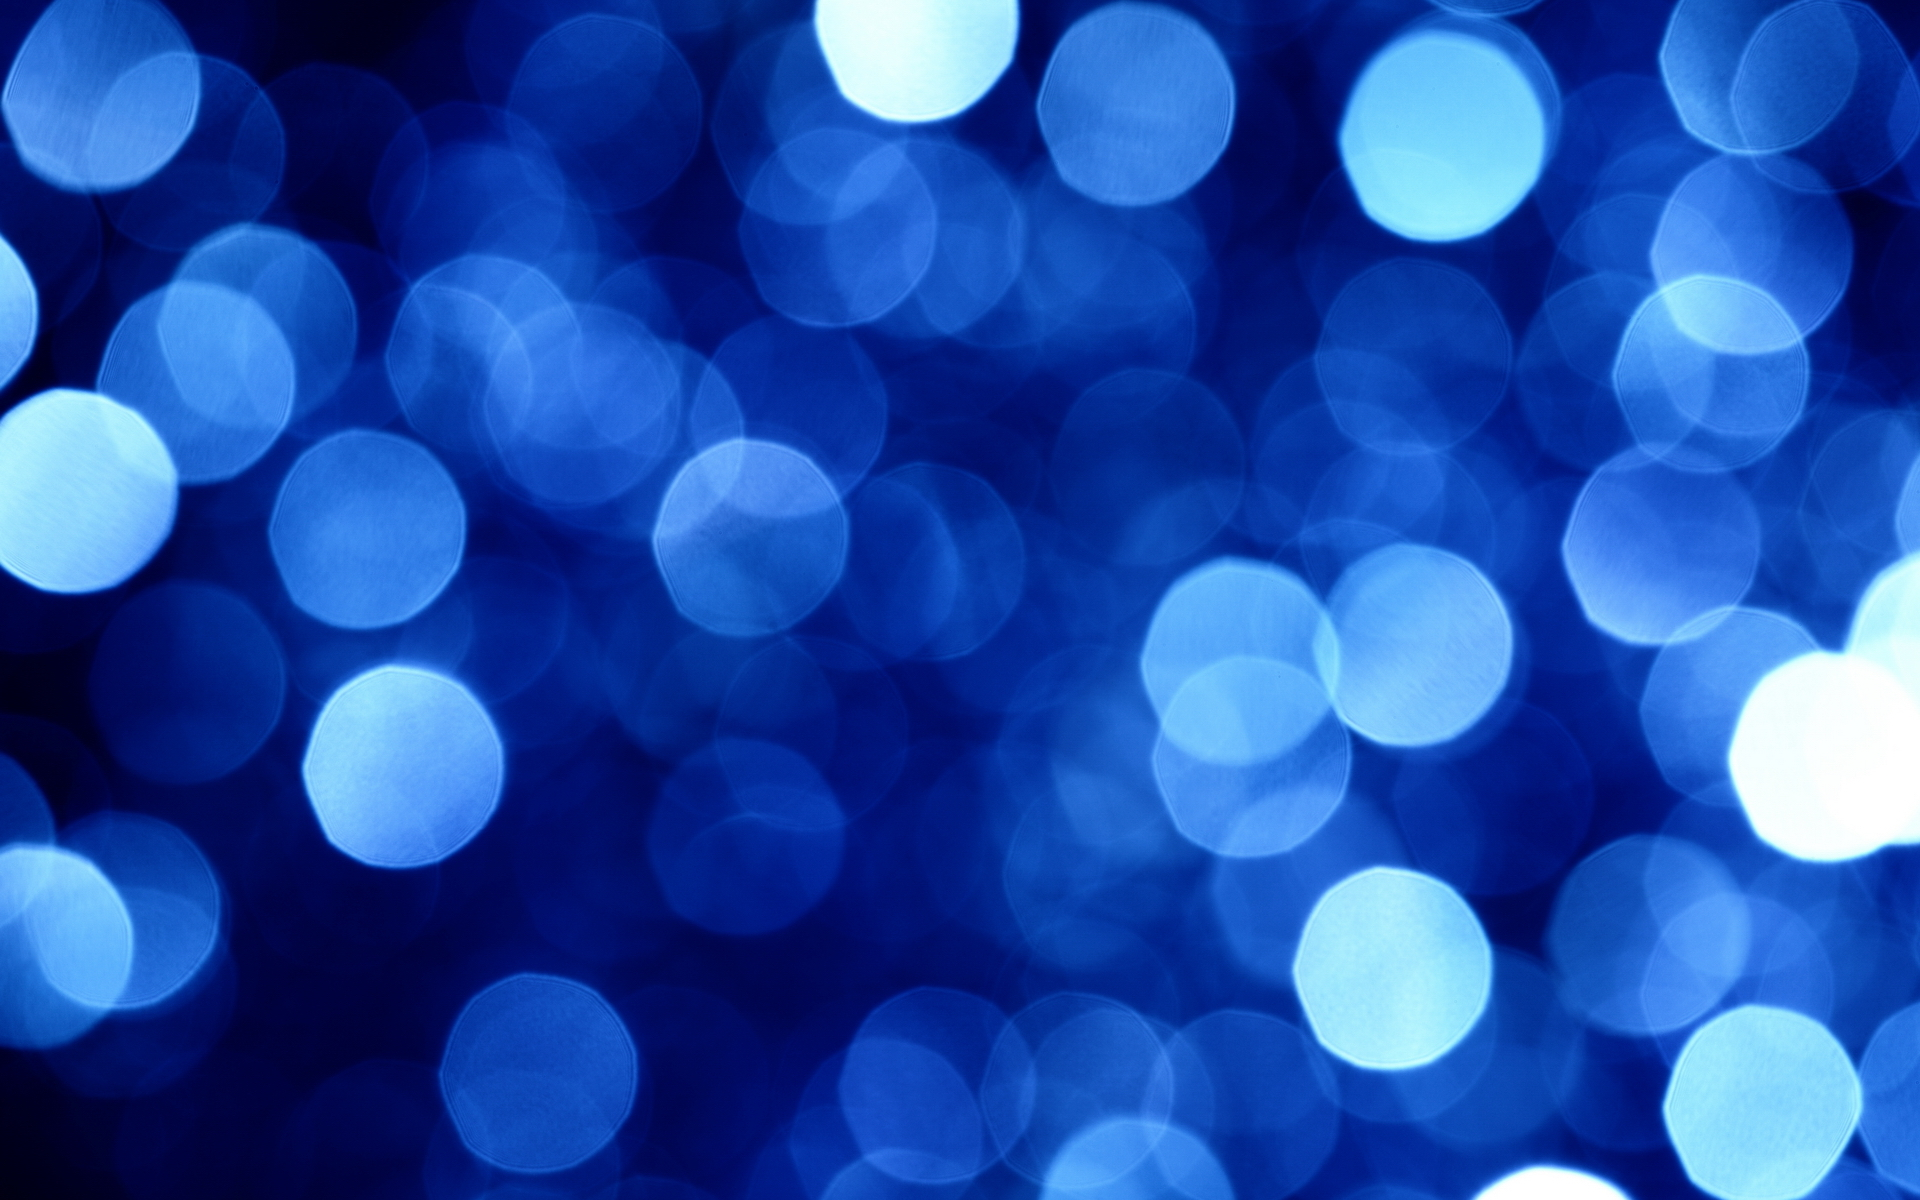 blue colour wallpaper - wallpaper, high definition, high quality